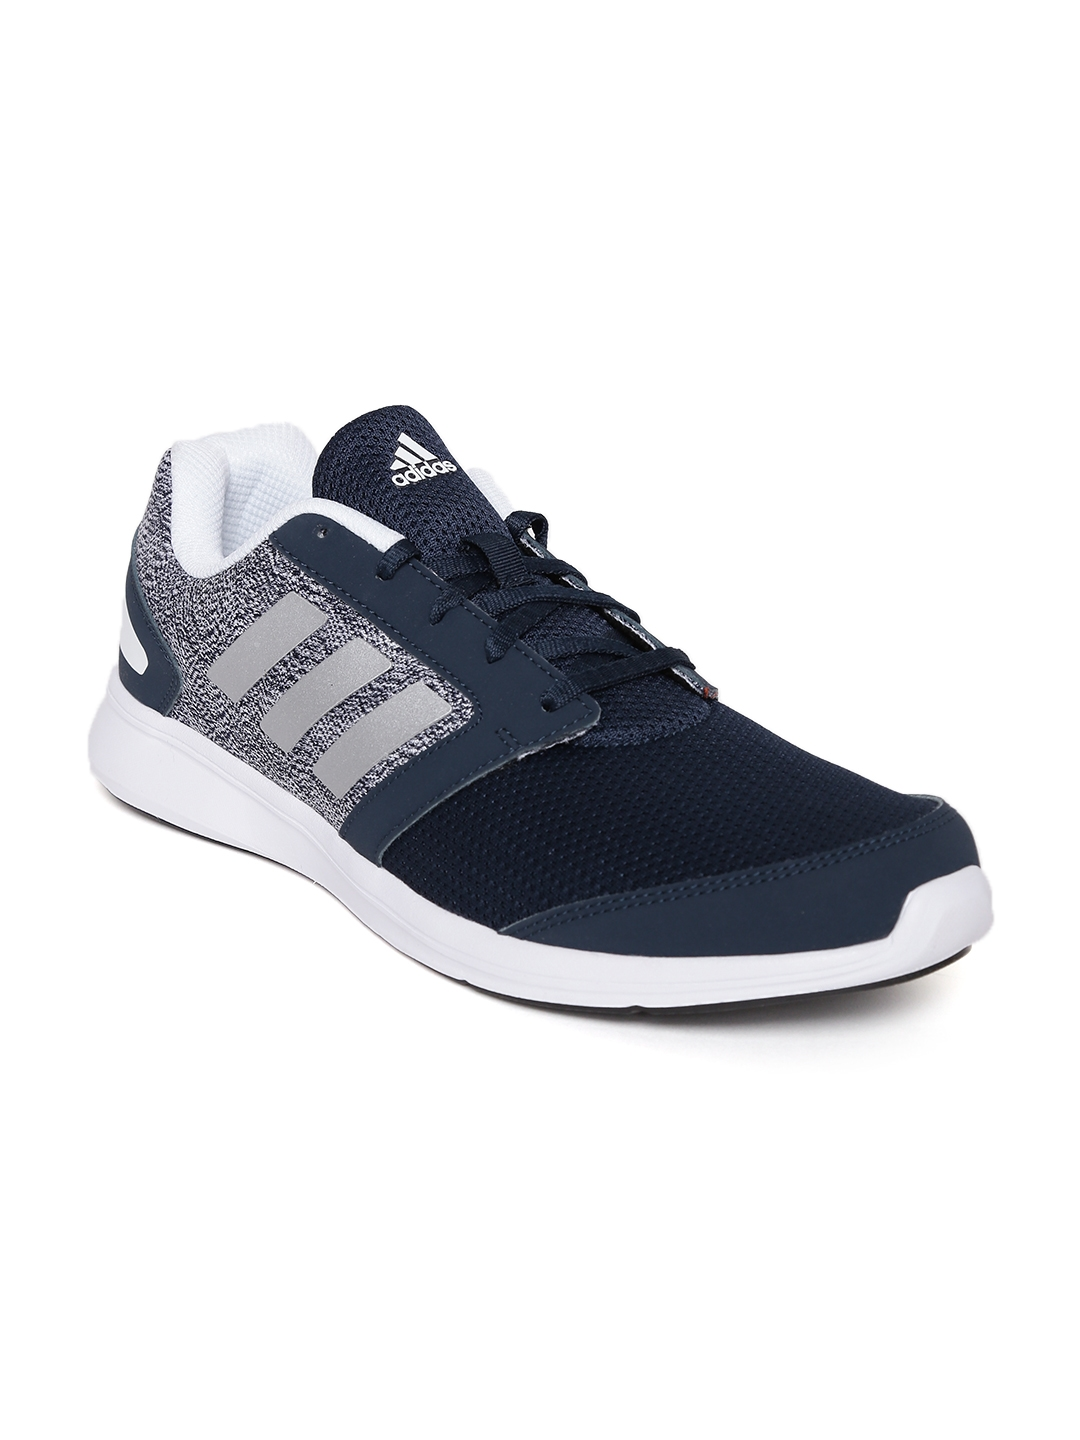 Navy Blue And White Basketball Shoes